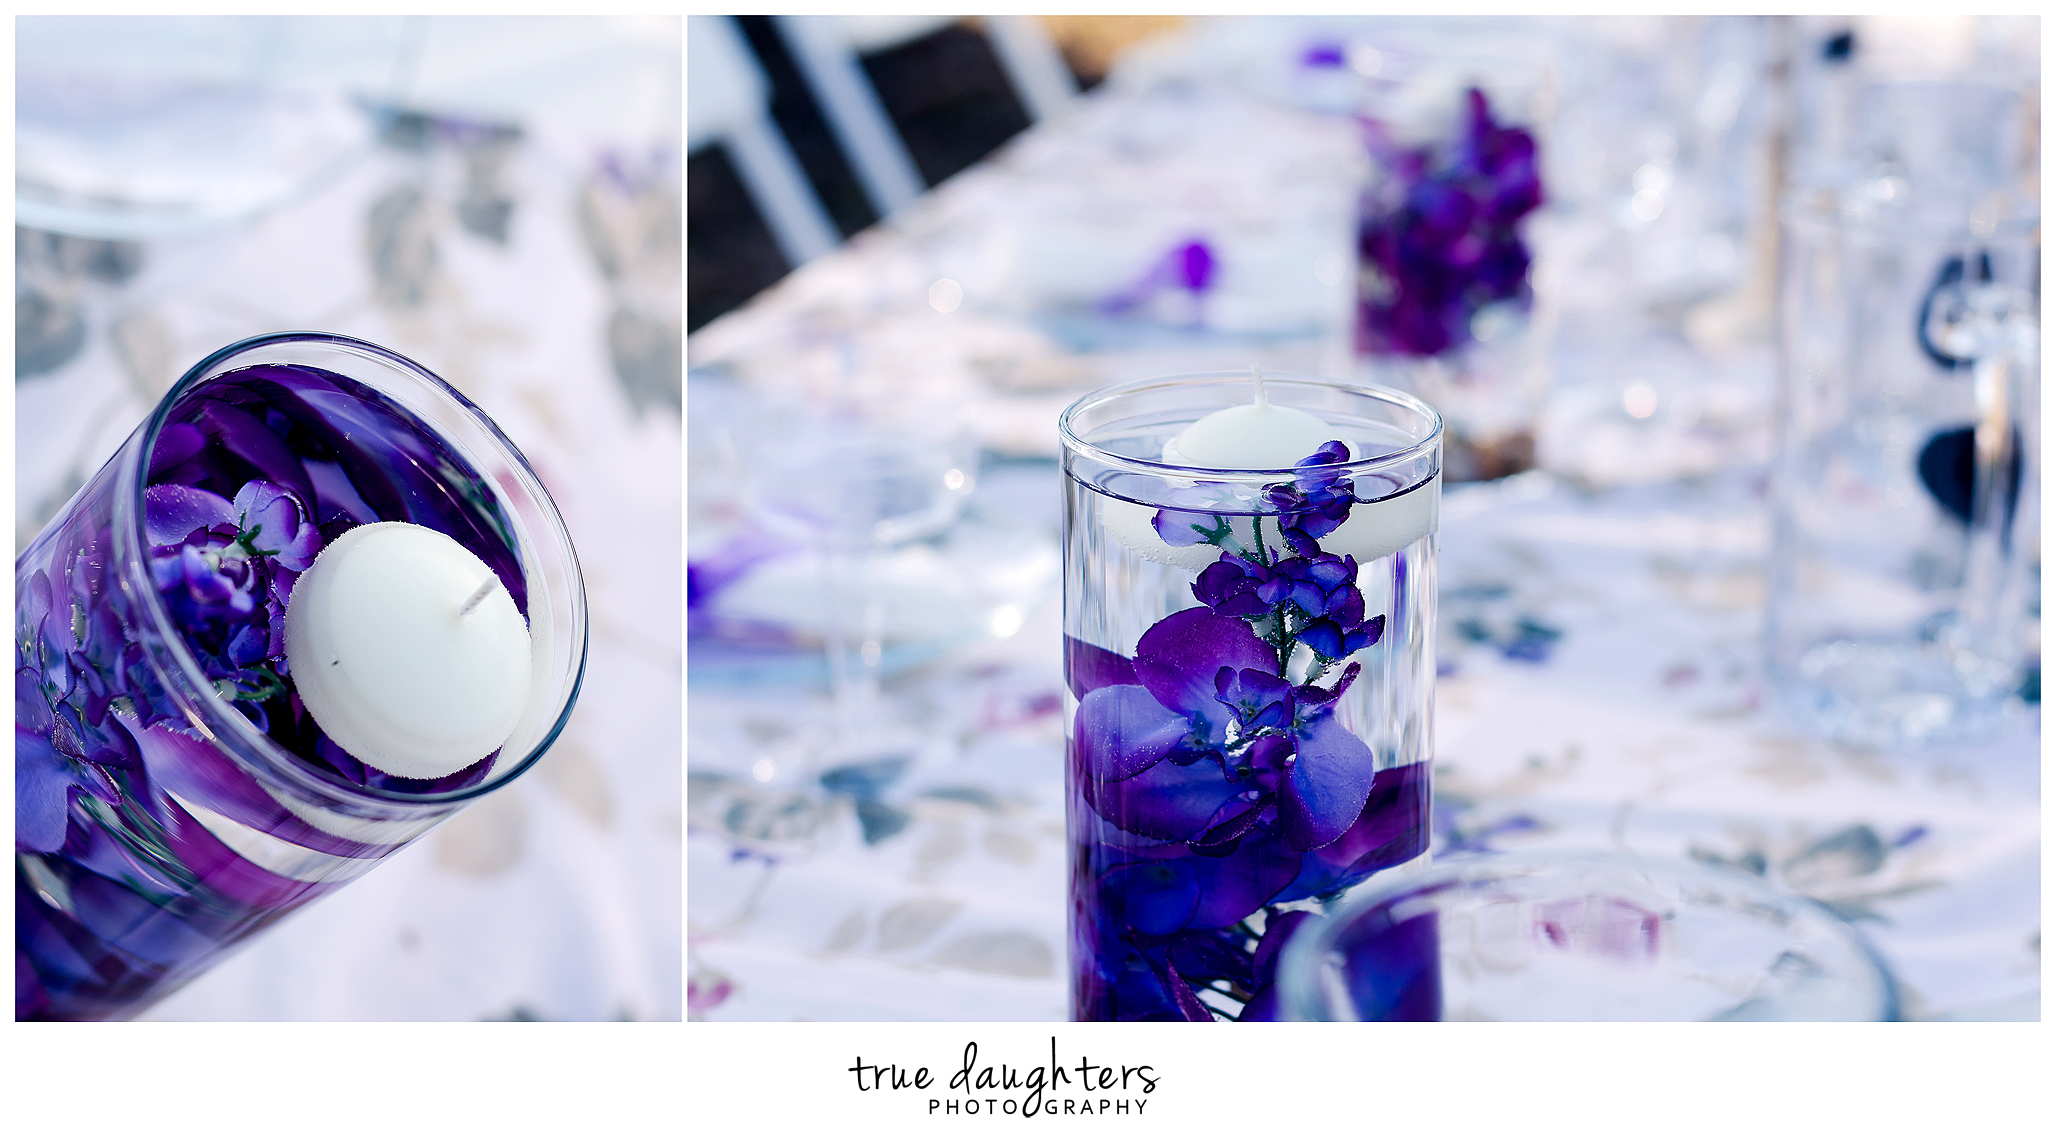 True_Daughters_Photography_Campitelli_Wedding-14.png